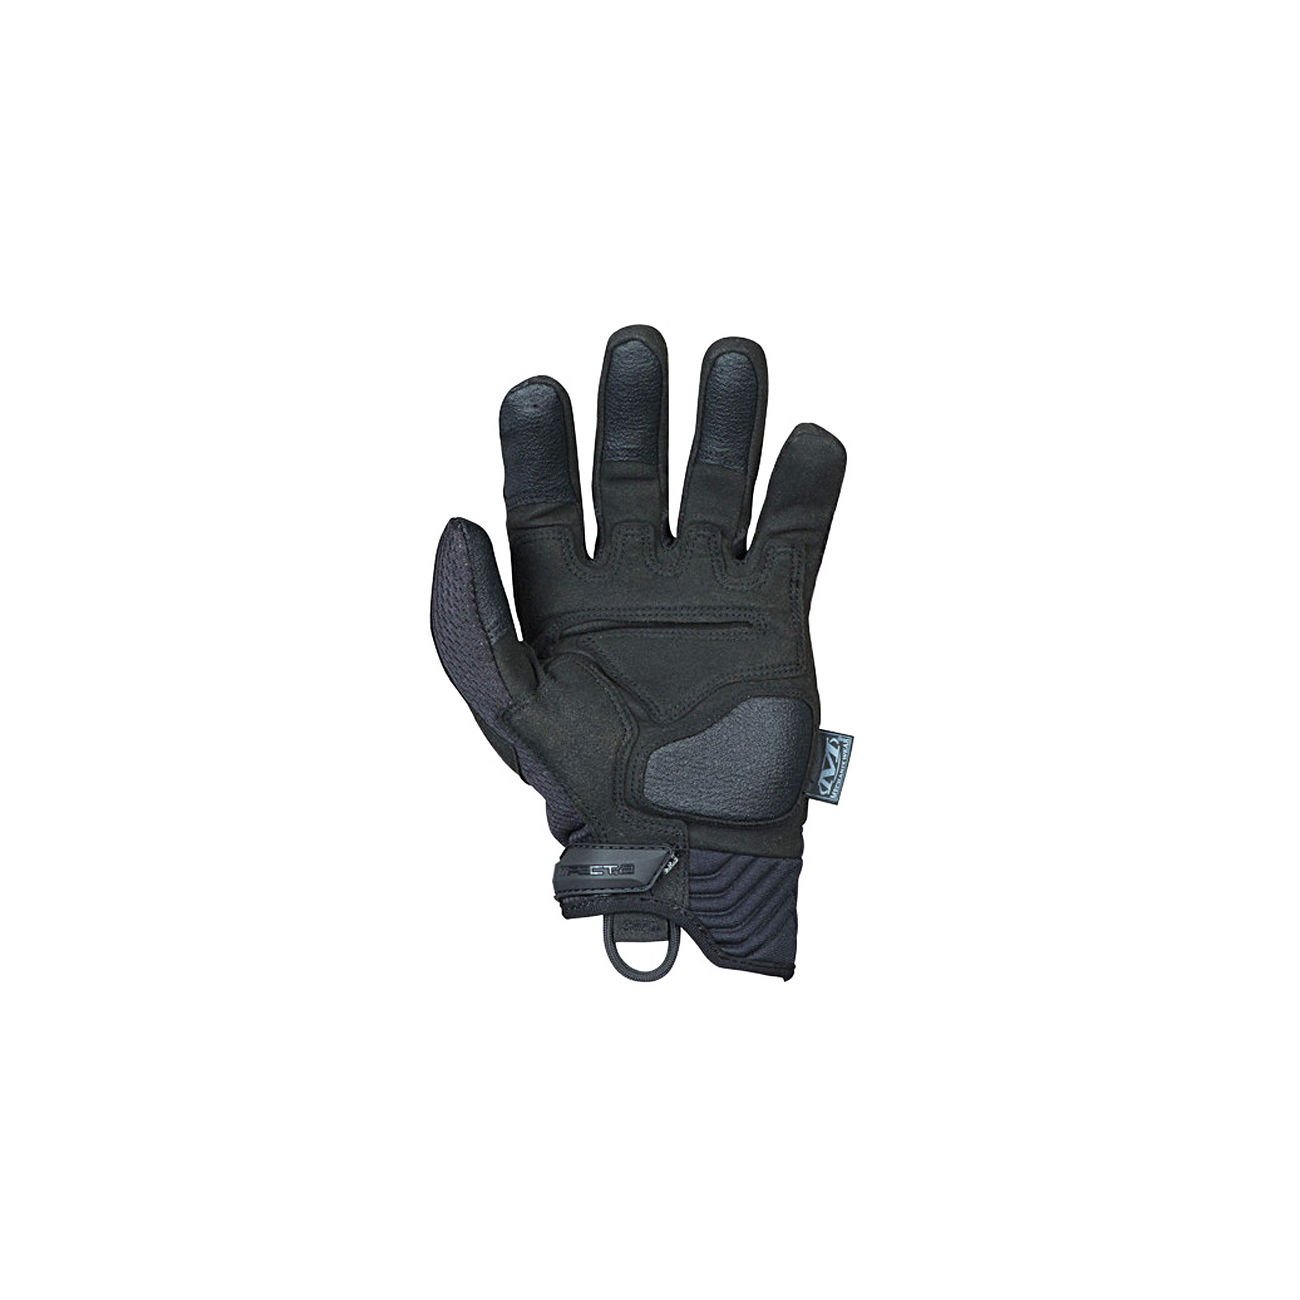 Mechanix Wear M-Pact 2 Handschuhe covert 1